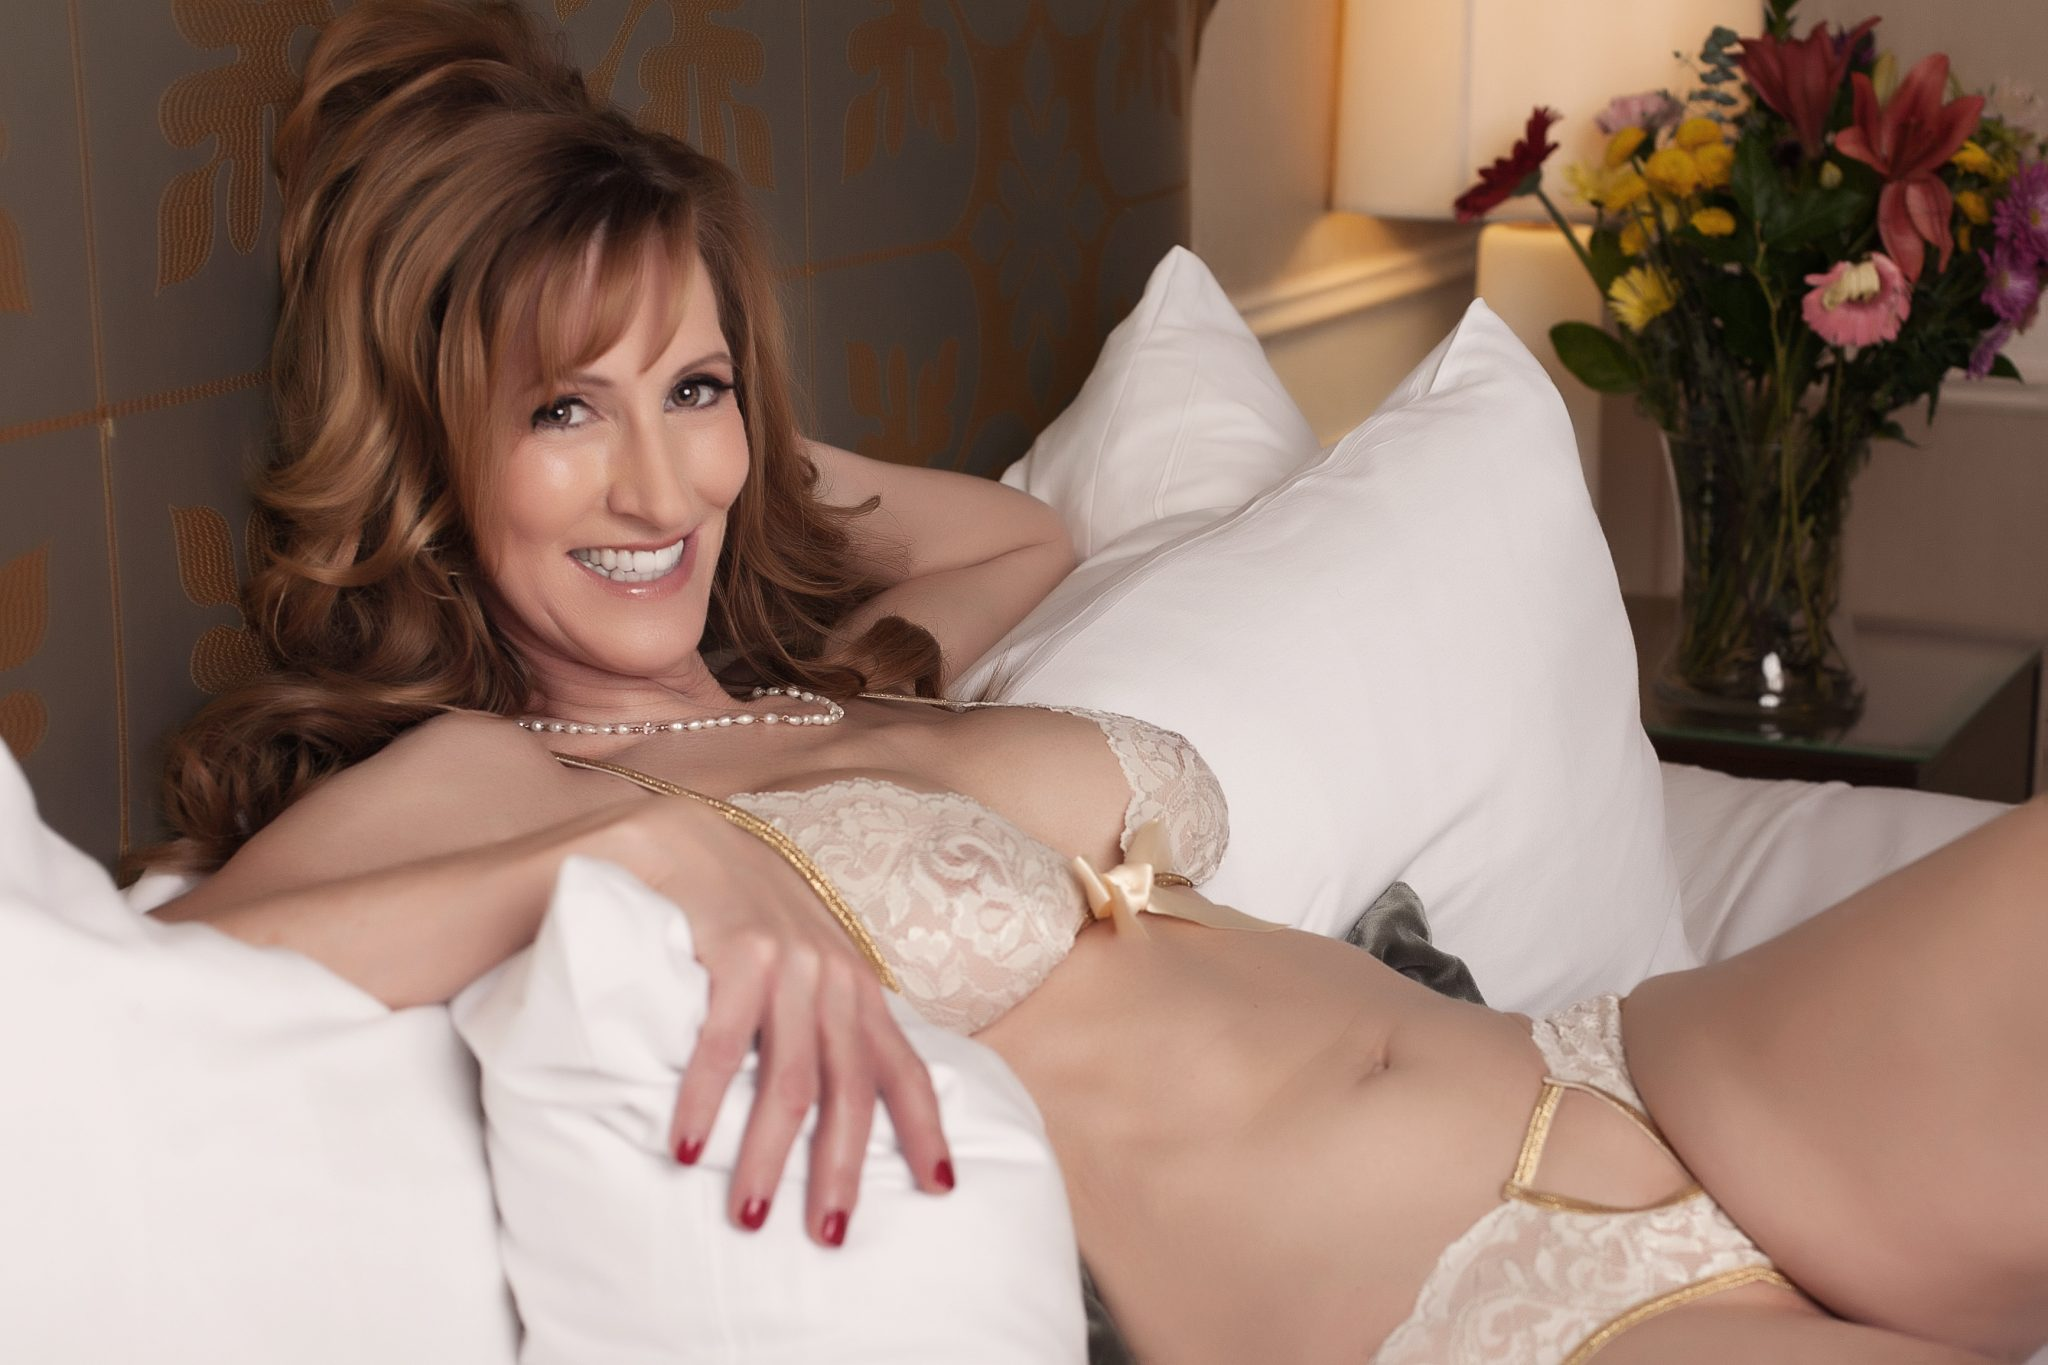 Show your personality with natural expressions. Laugh it up during your boudoir shoot.